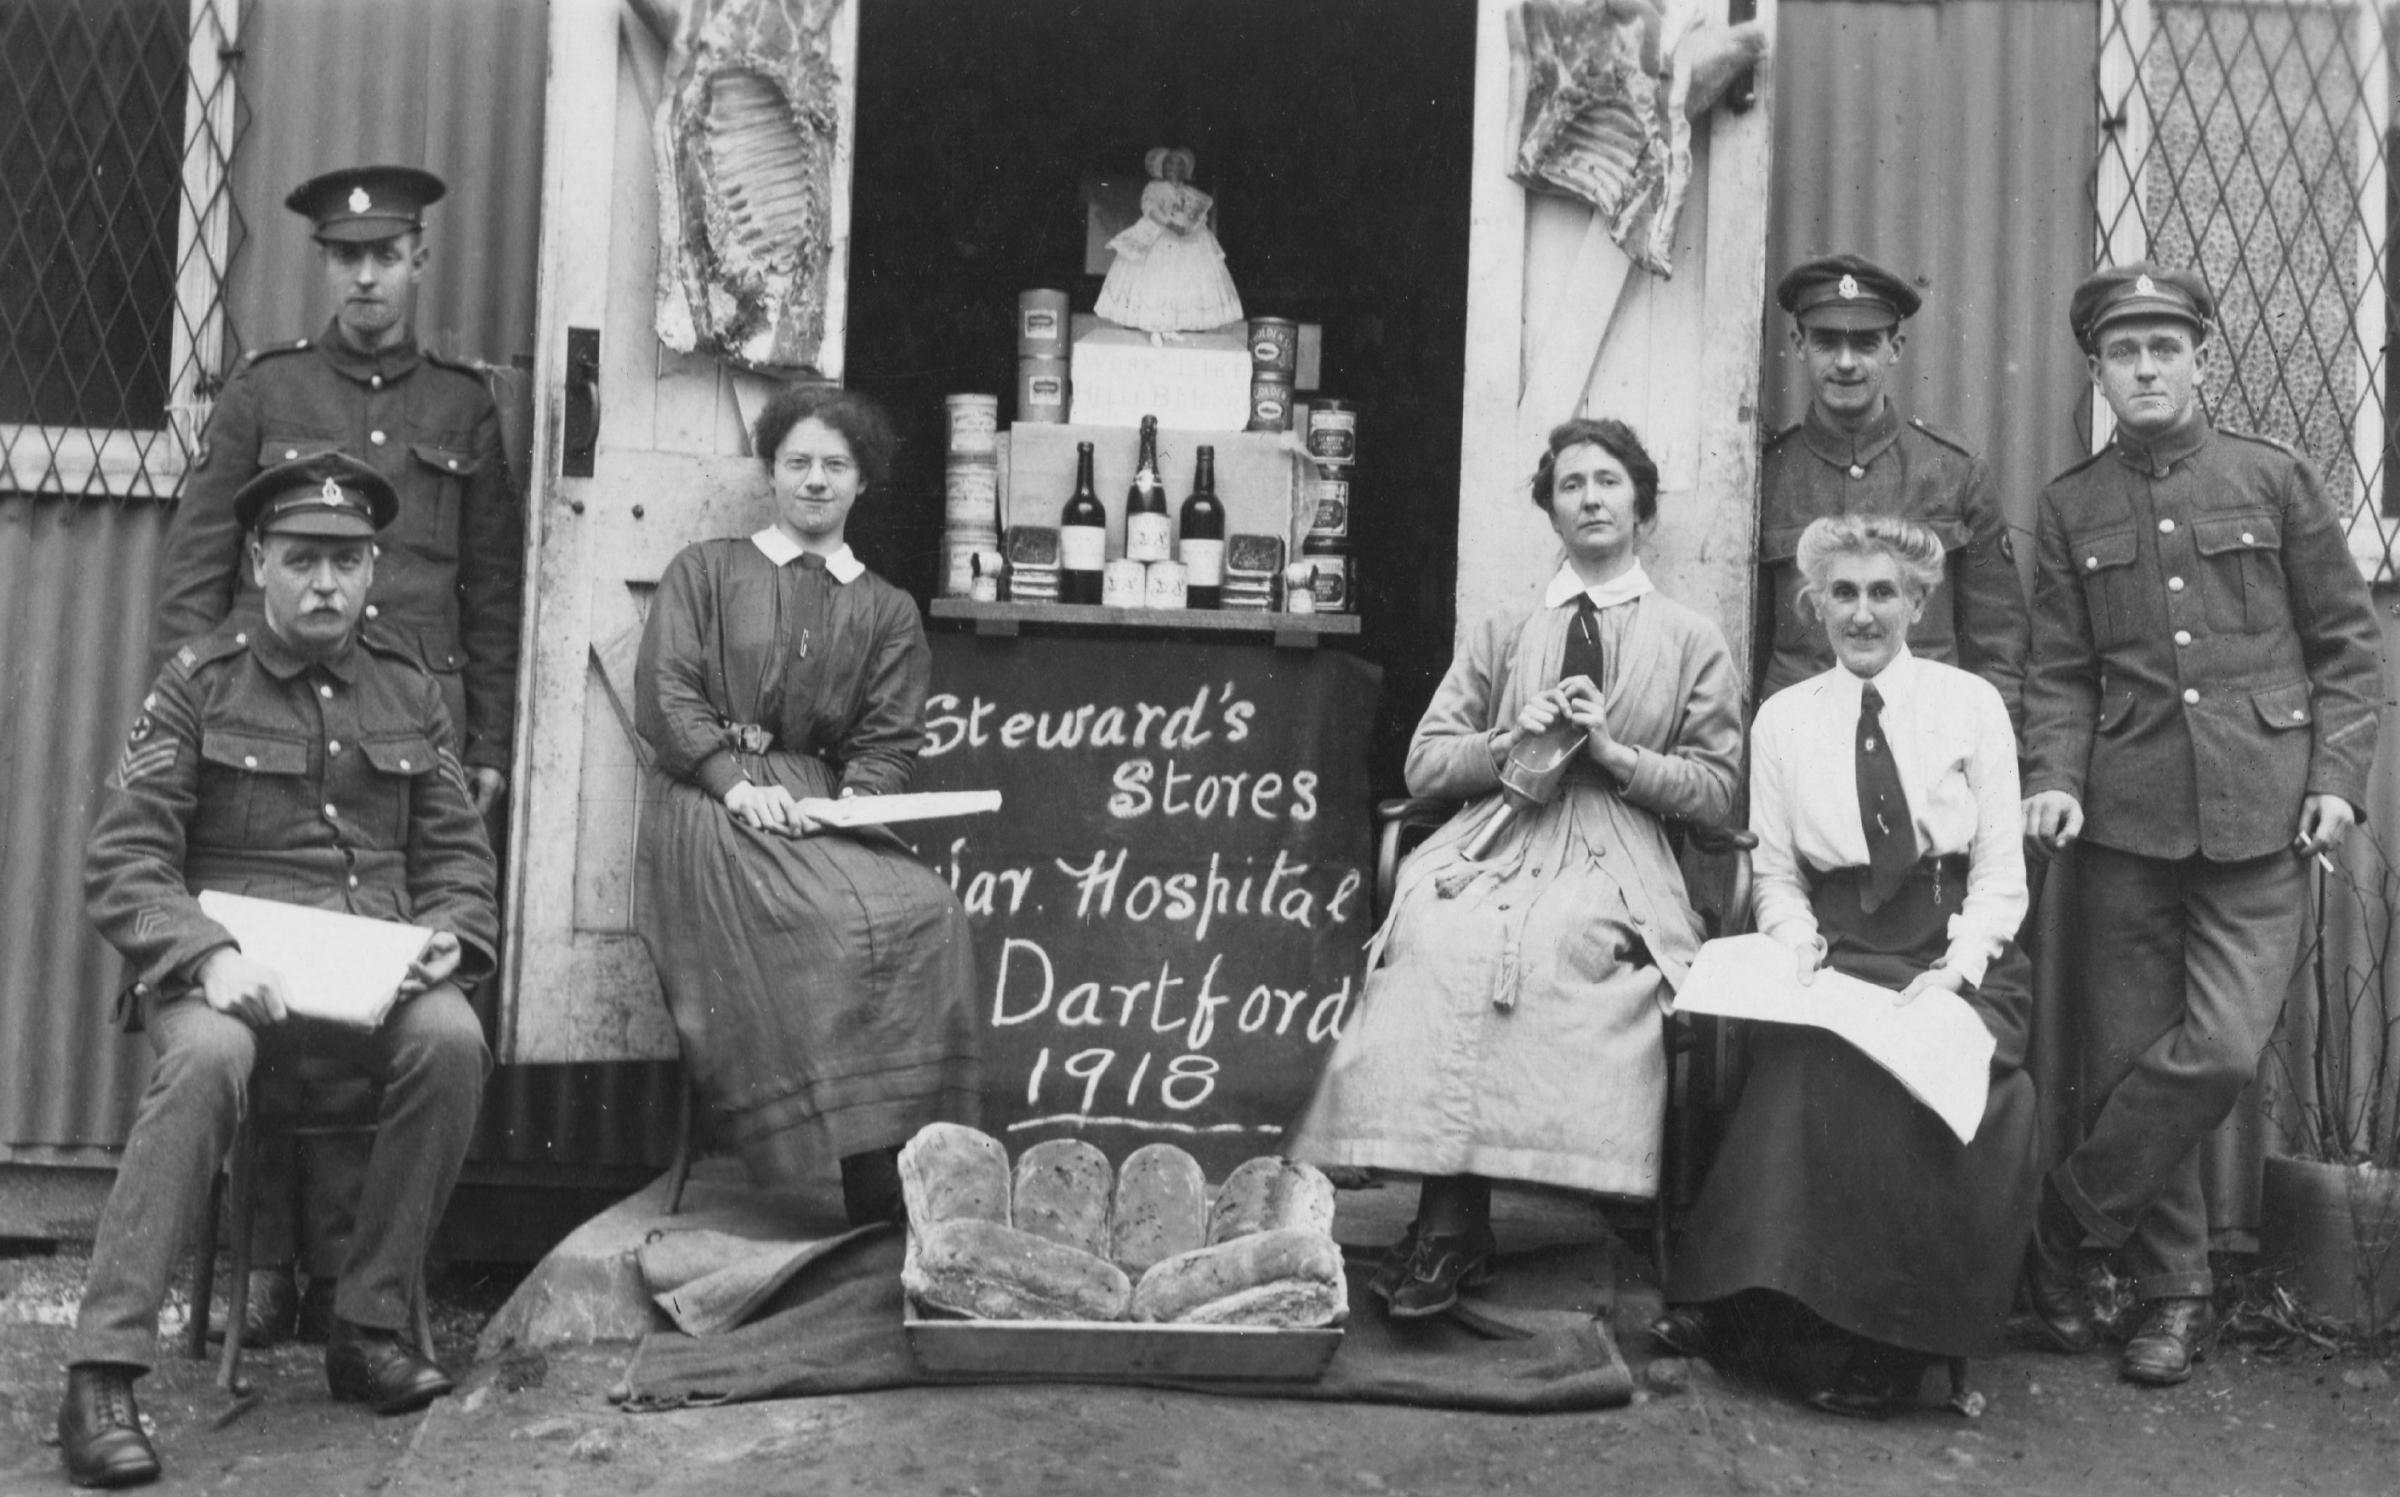 PICTURED: Memories of Dartford during the First World War revealed